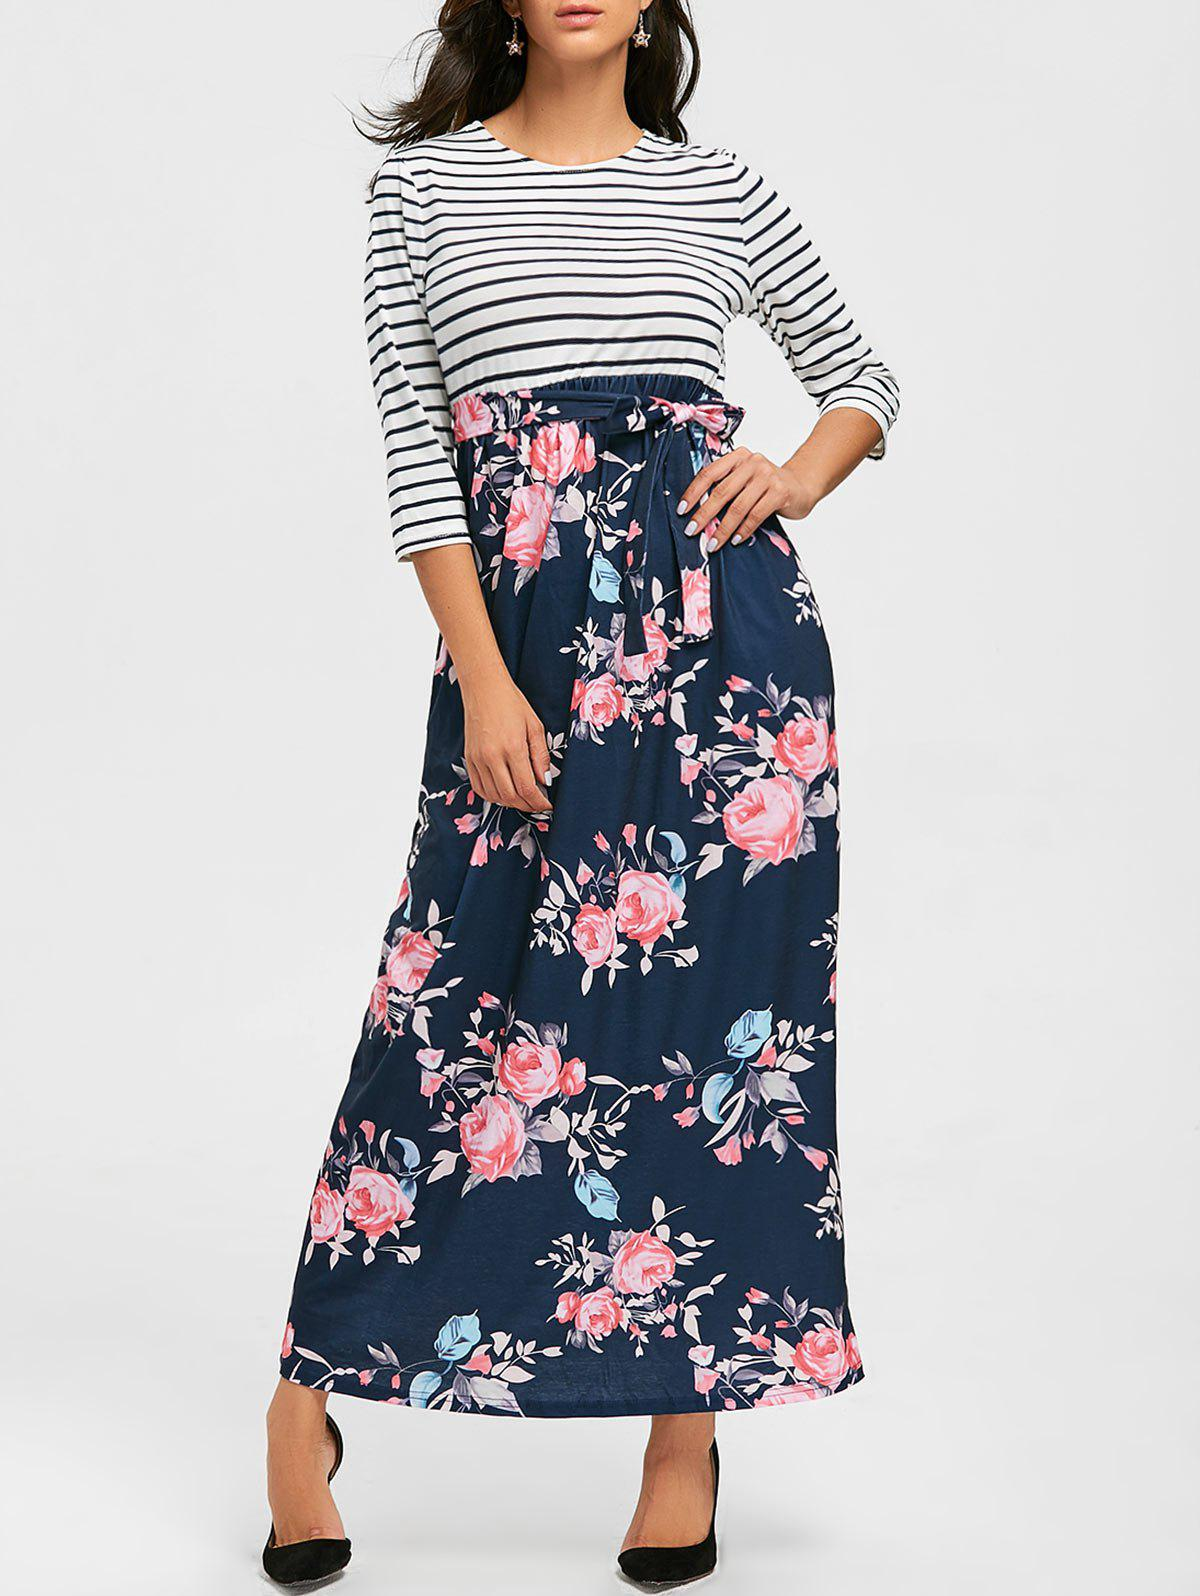 Striped and Floral Print Maxi Dress - PURPLISH BLUE L